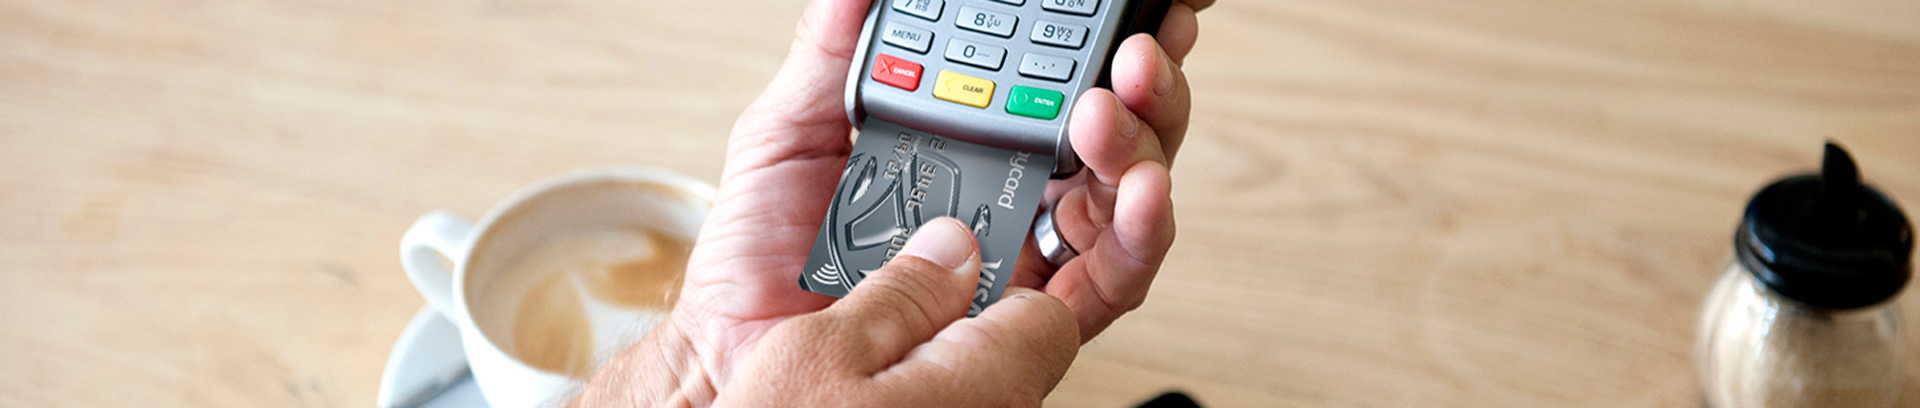 Credit card being inserted into a chip and pin machine